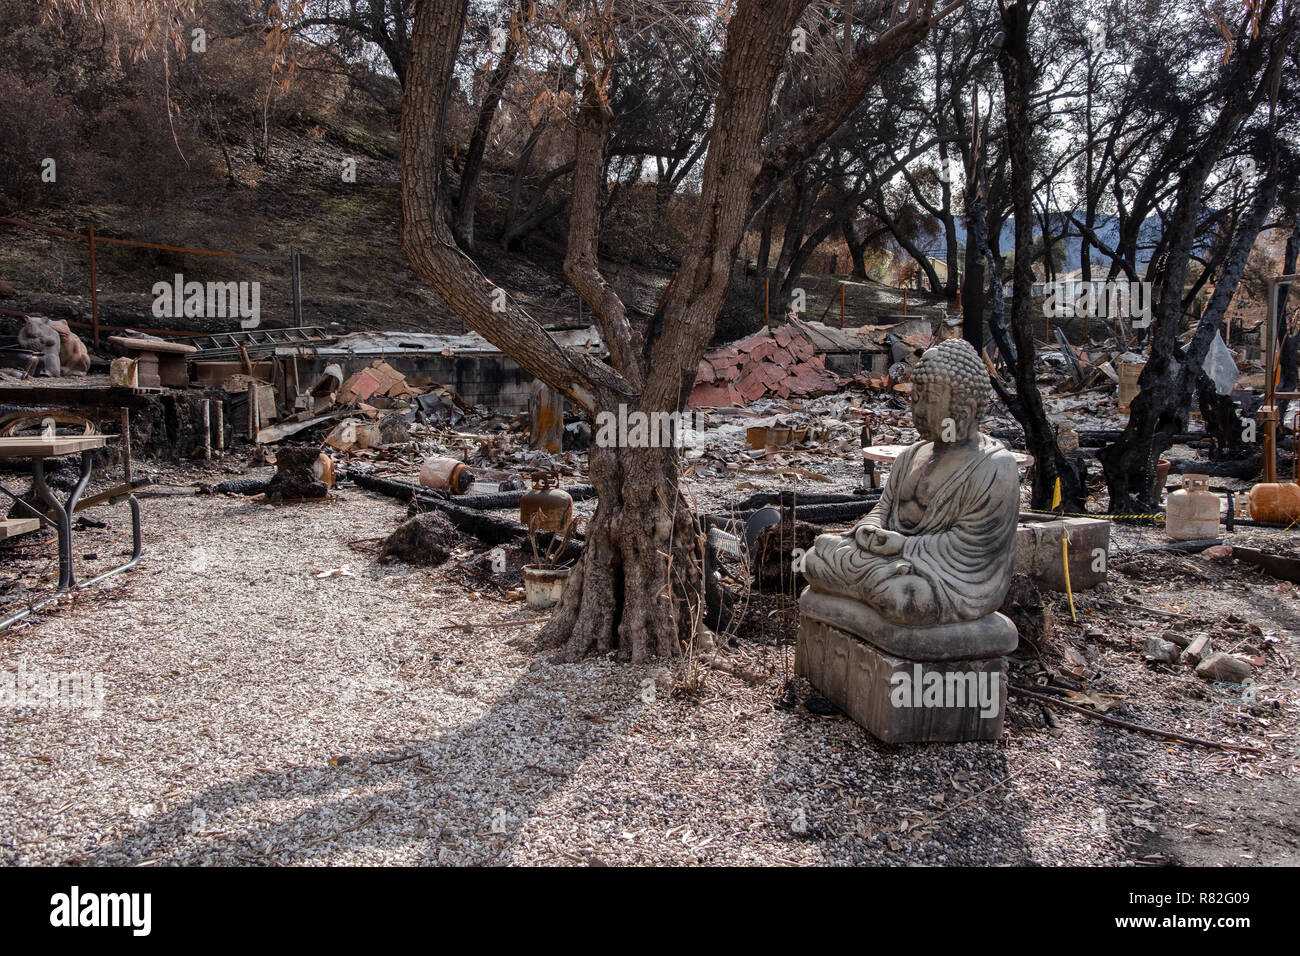 Remains of Randy's Roadhouse roadside restaurant after Malibu wildfire of November 2018 California, USA - Stock Image